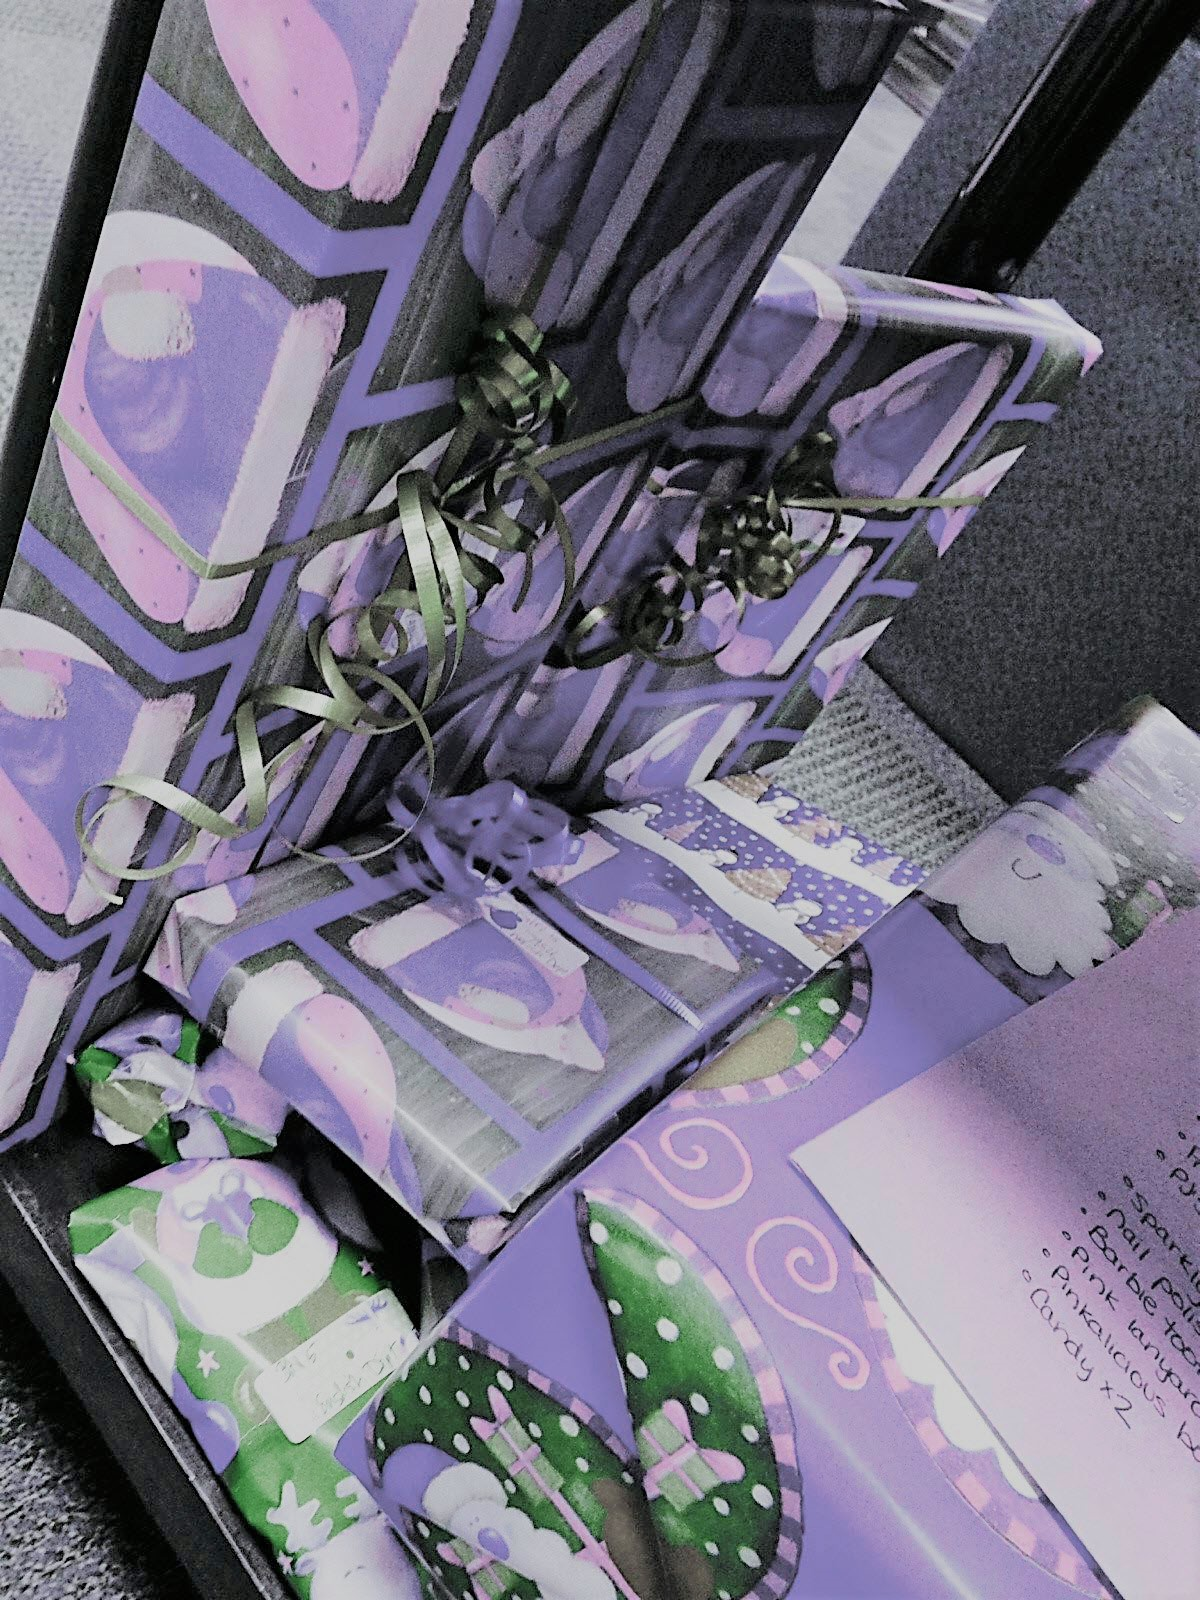 Image of presents wrapped by CARE committee / Photo by Kristen LaRue-Sandler